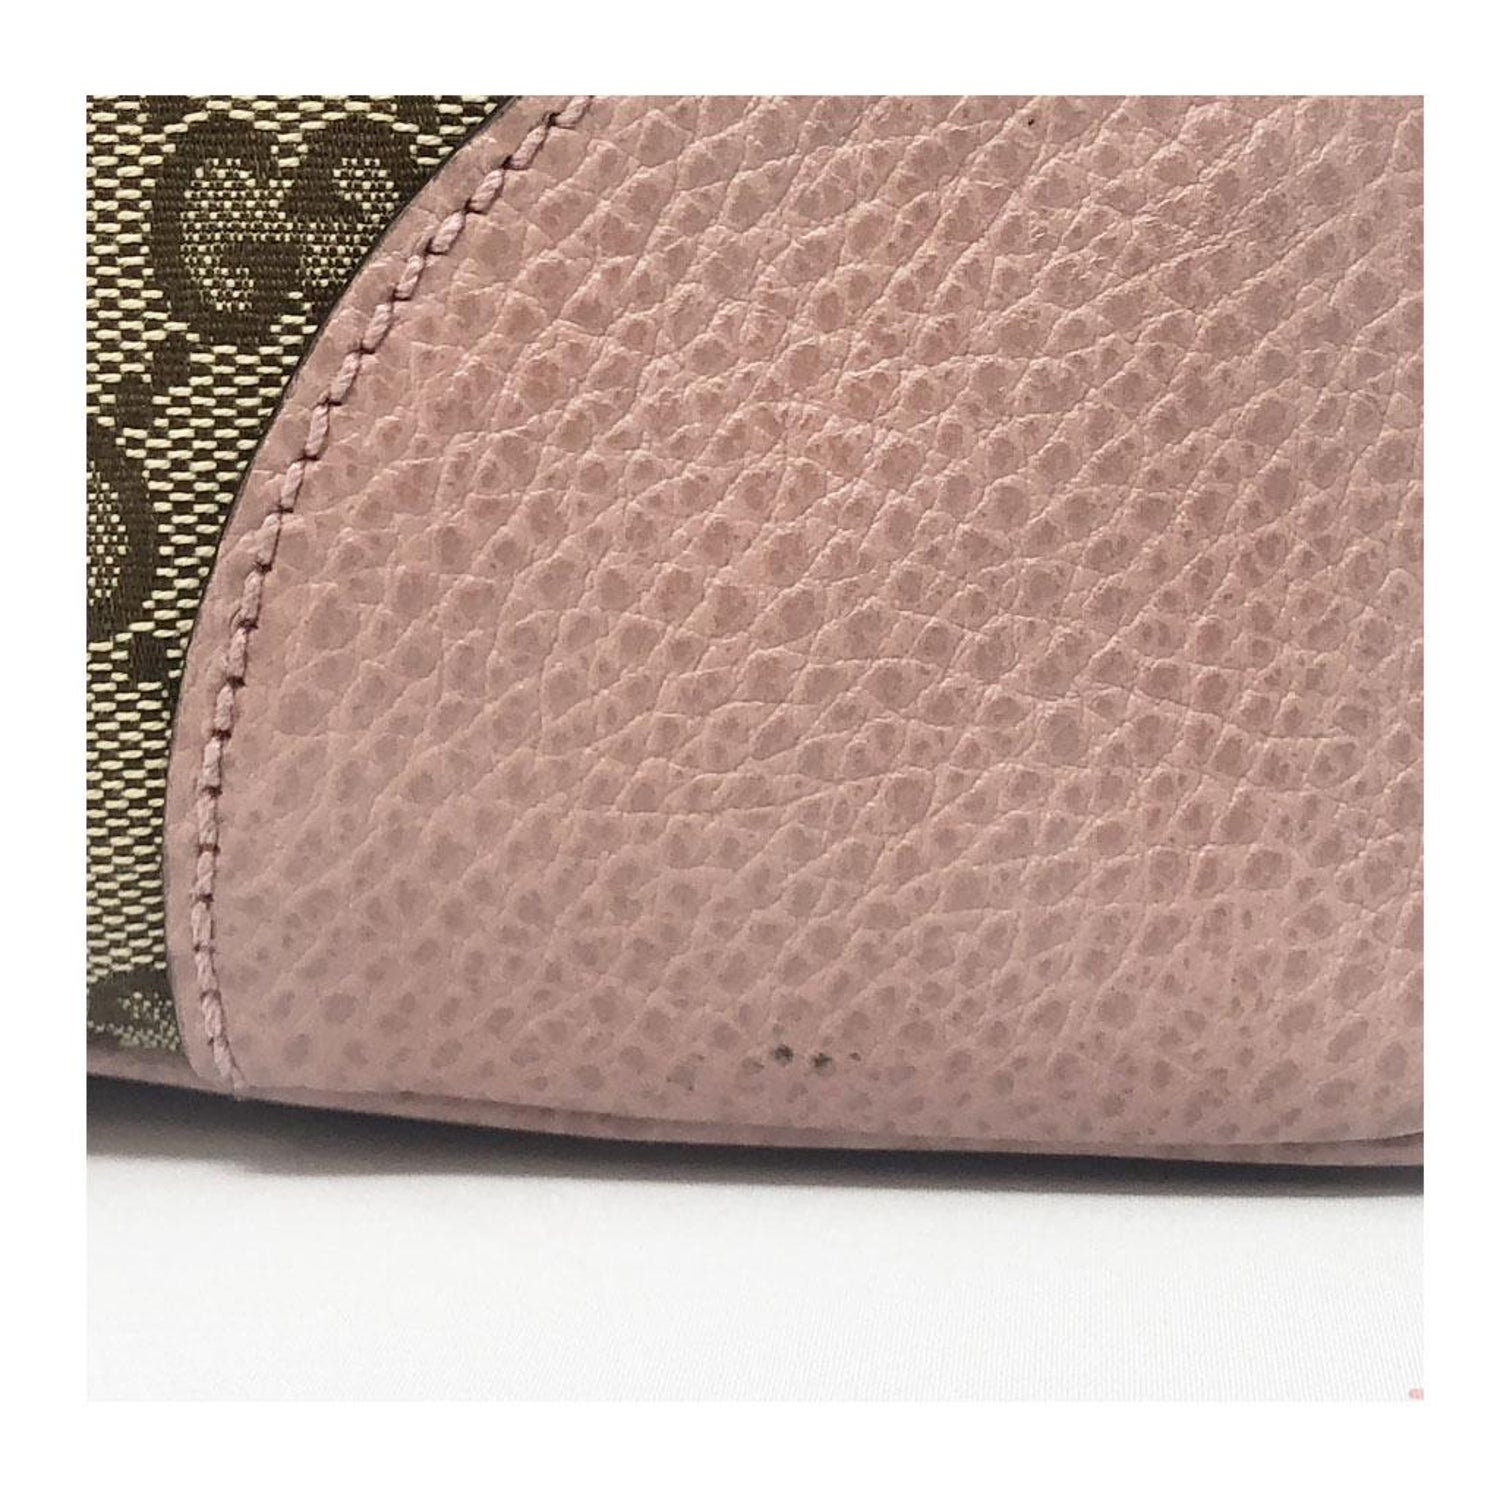 9c73b76cf13 Authentic Gucci Monogram and Pink Leather Large Tote Bag in Dust Bag For  Sale at 1stdibs